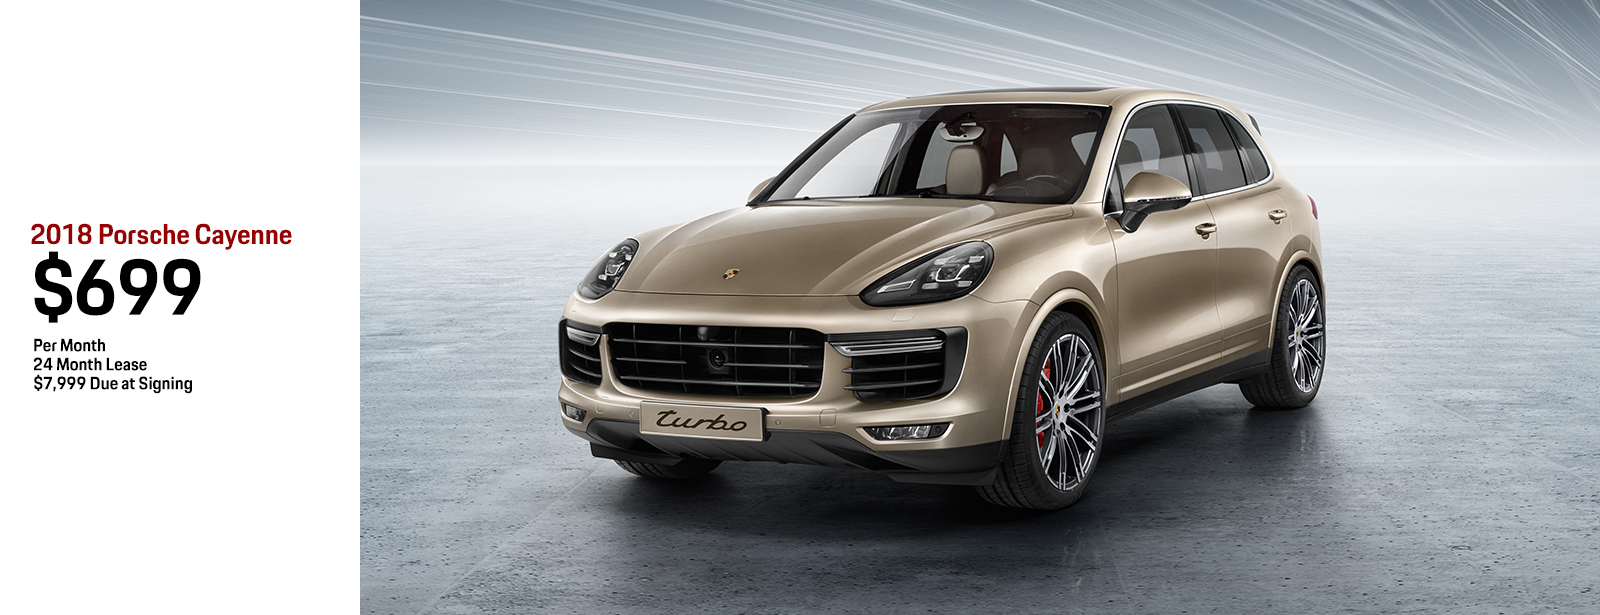 2018 Porsche Cayenne low payment lease special in Chandler, AZ